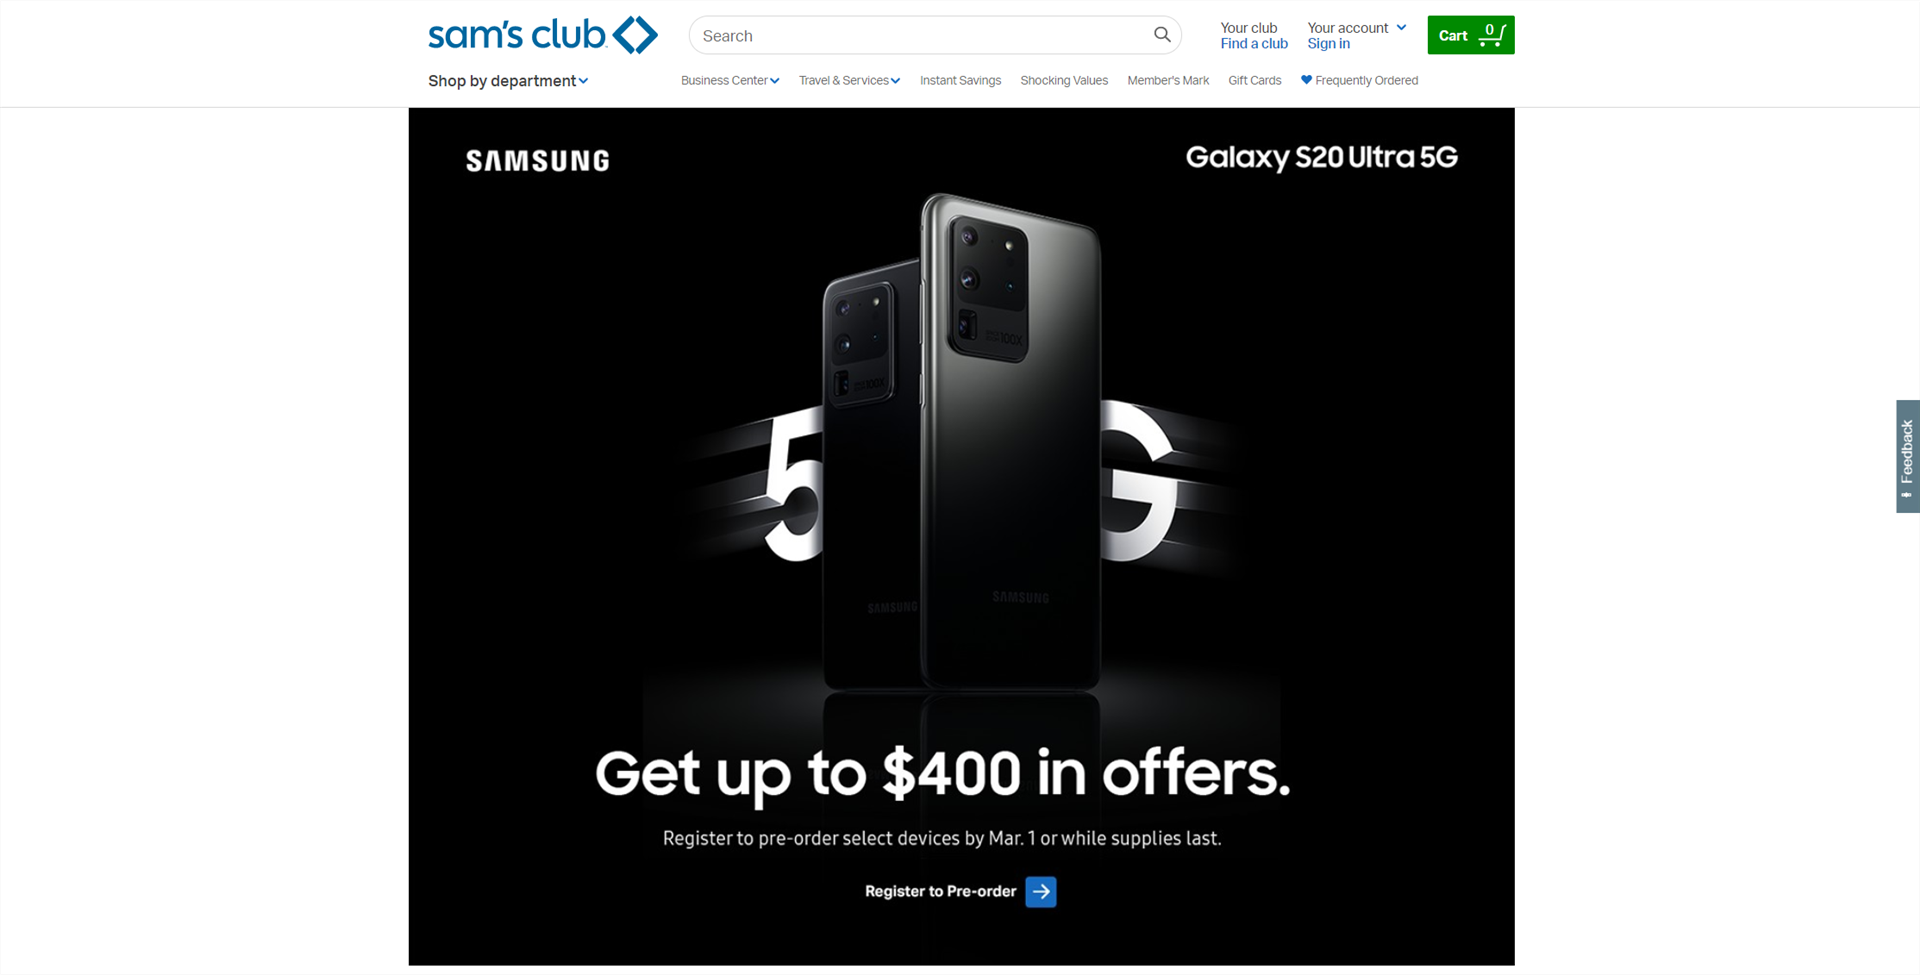 Sam's Club Galaxy S20 Preorder Page